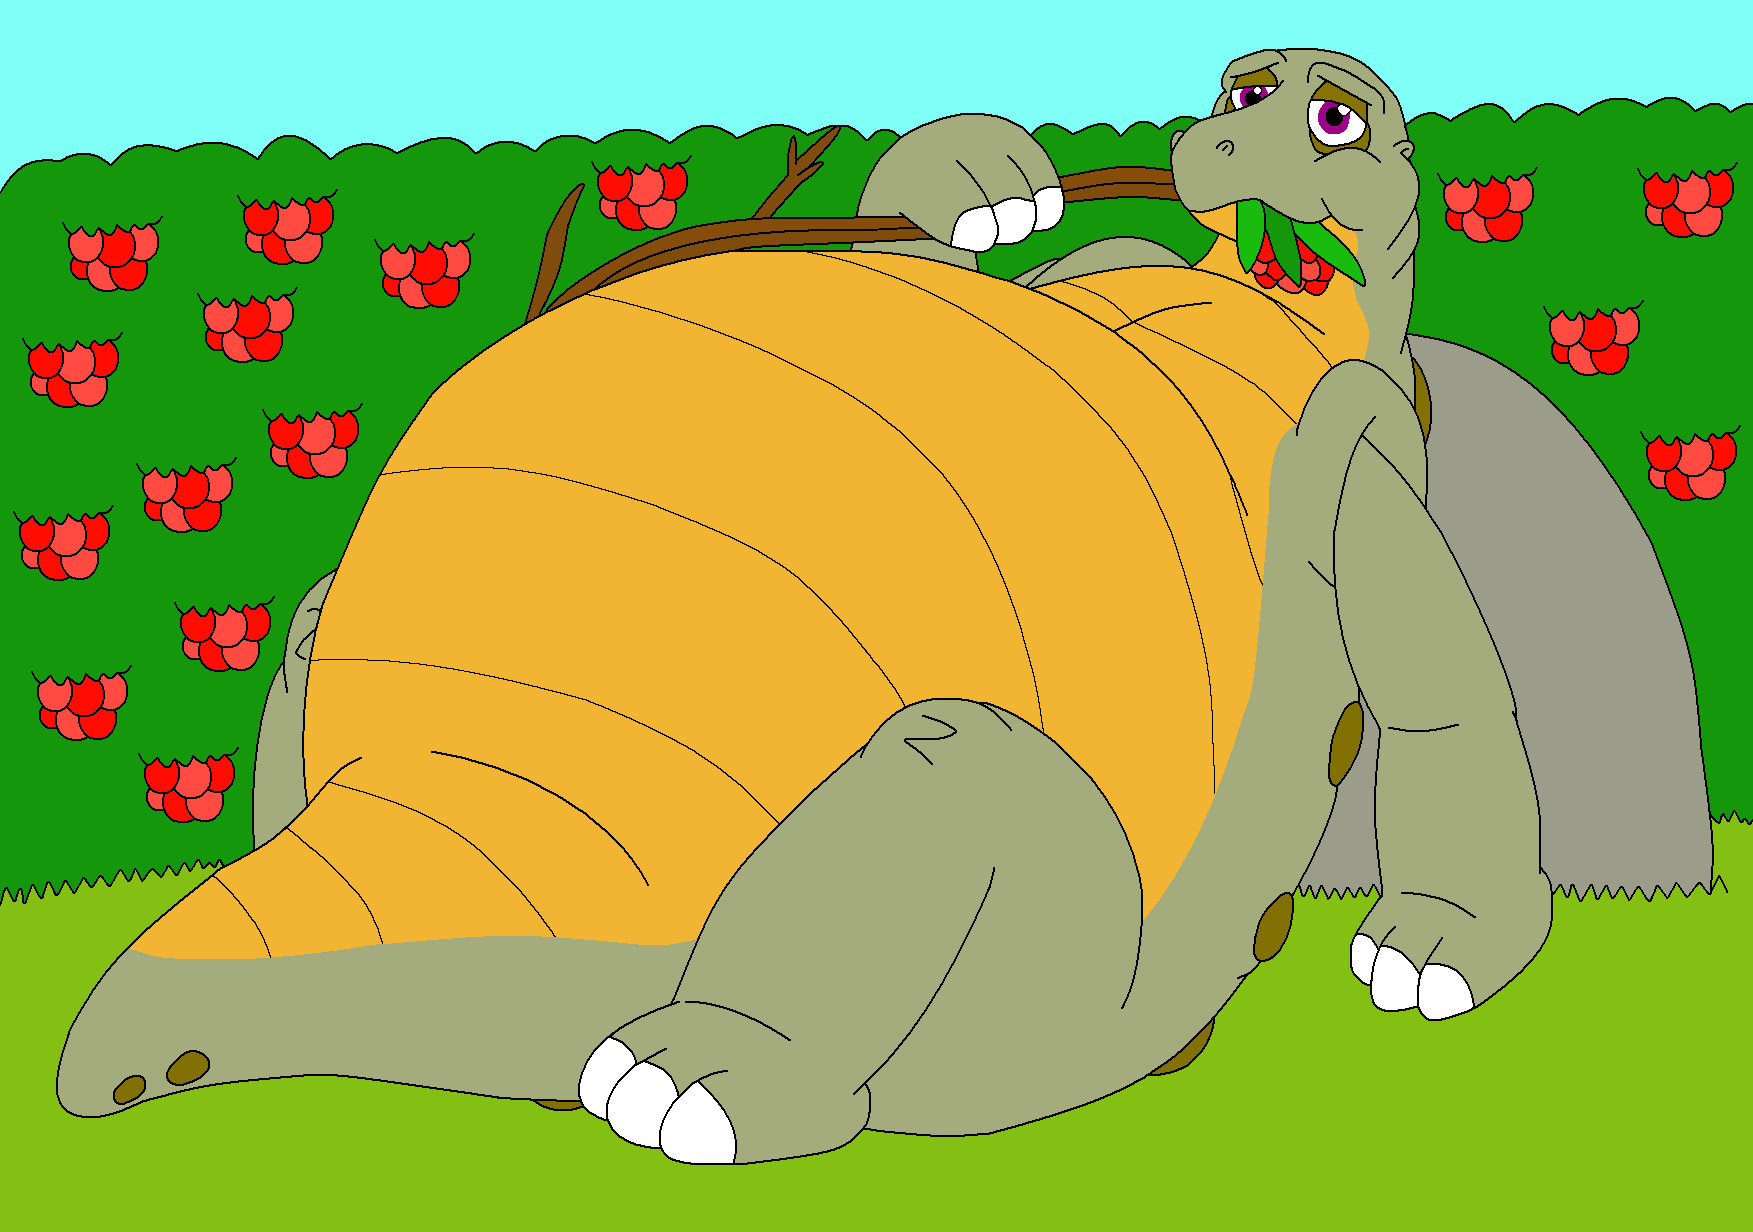 http://orig02.deviantart.net/ea4c/f/2010/197/a/6/spike_eat_too_much_berries_by_mcsaurus.jpg